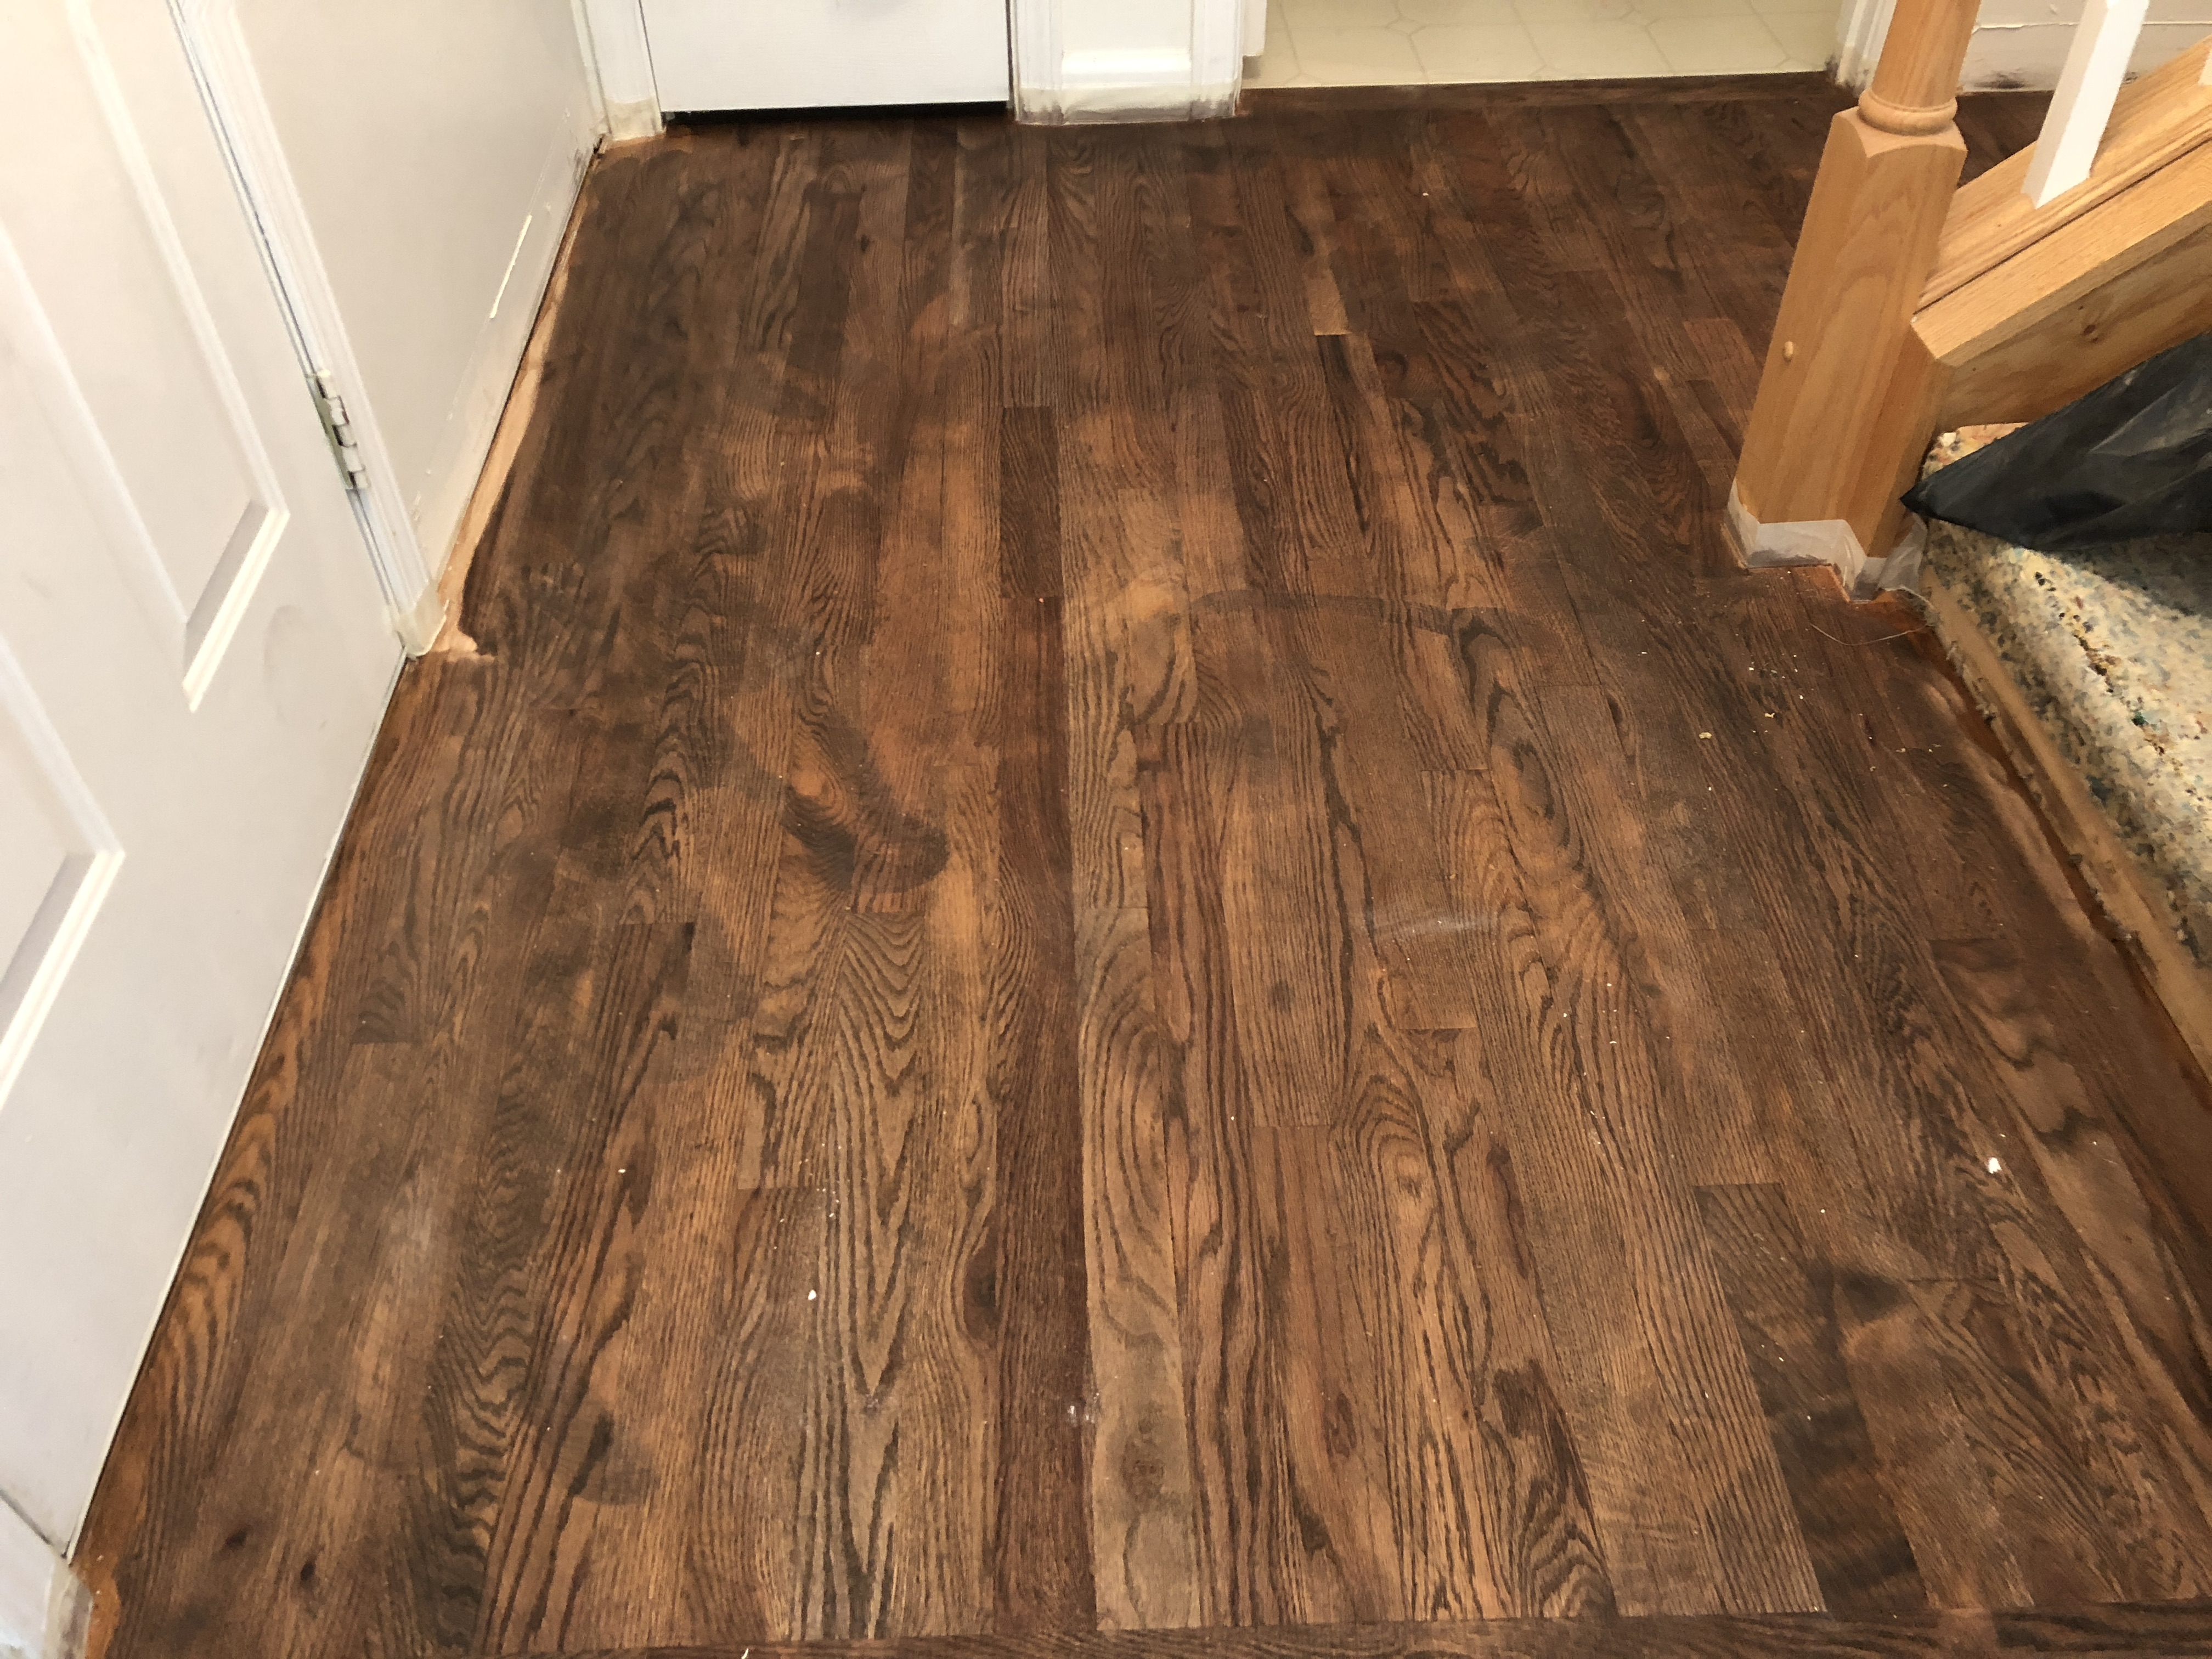 welborn floors, wood floor refinishing, hardwood floor refinisher, dustless floor refinishing, dustless sanding